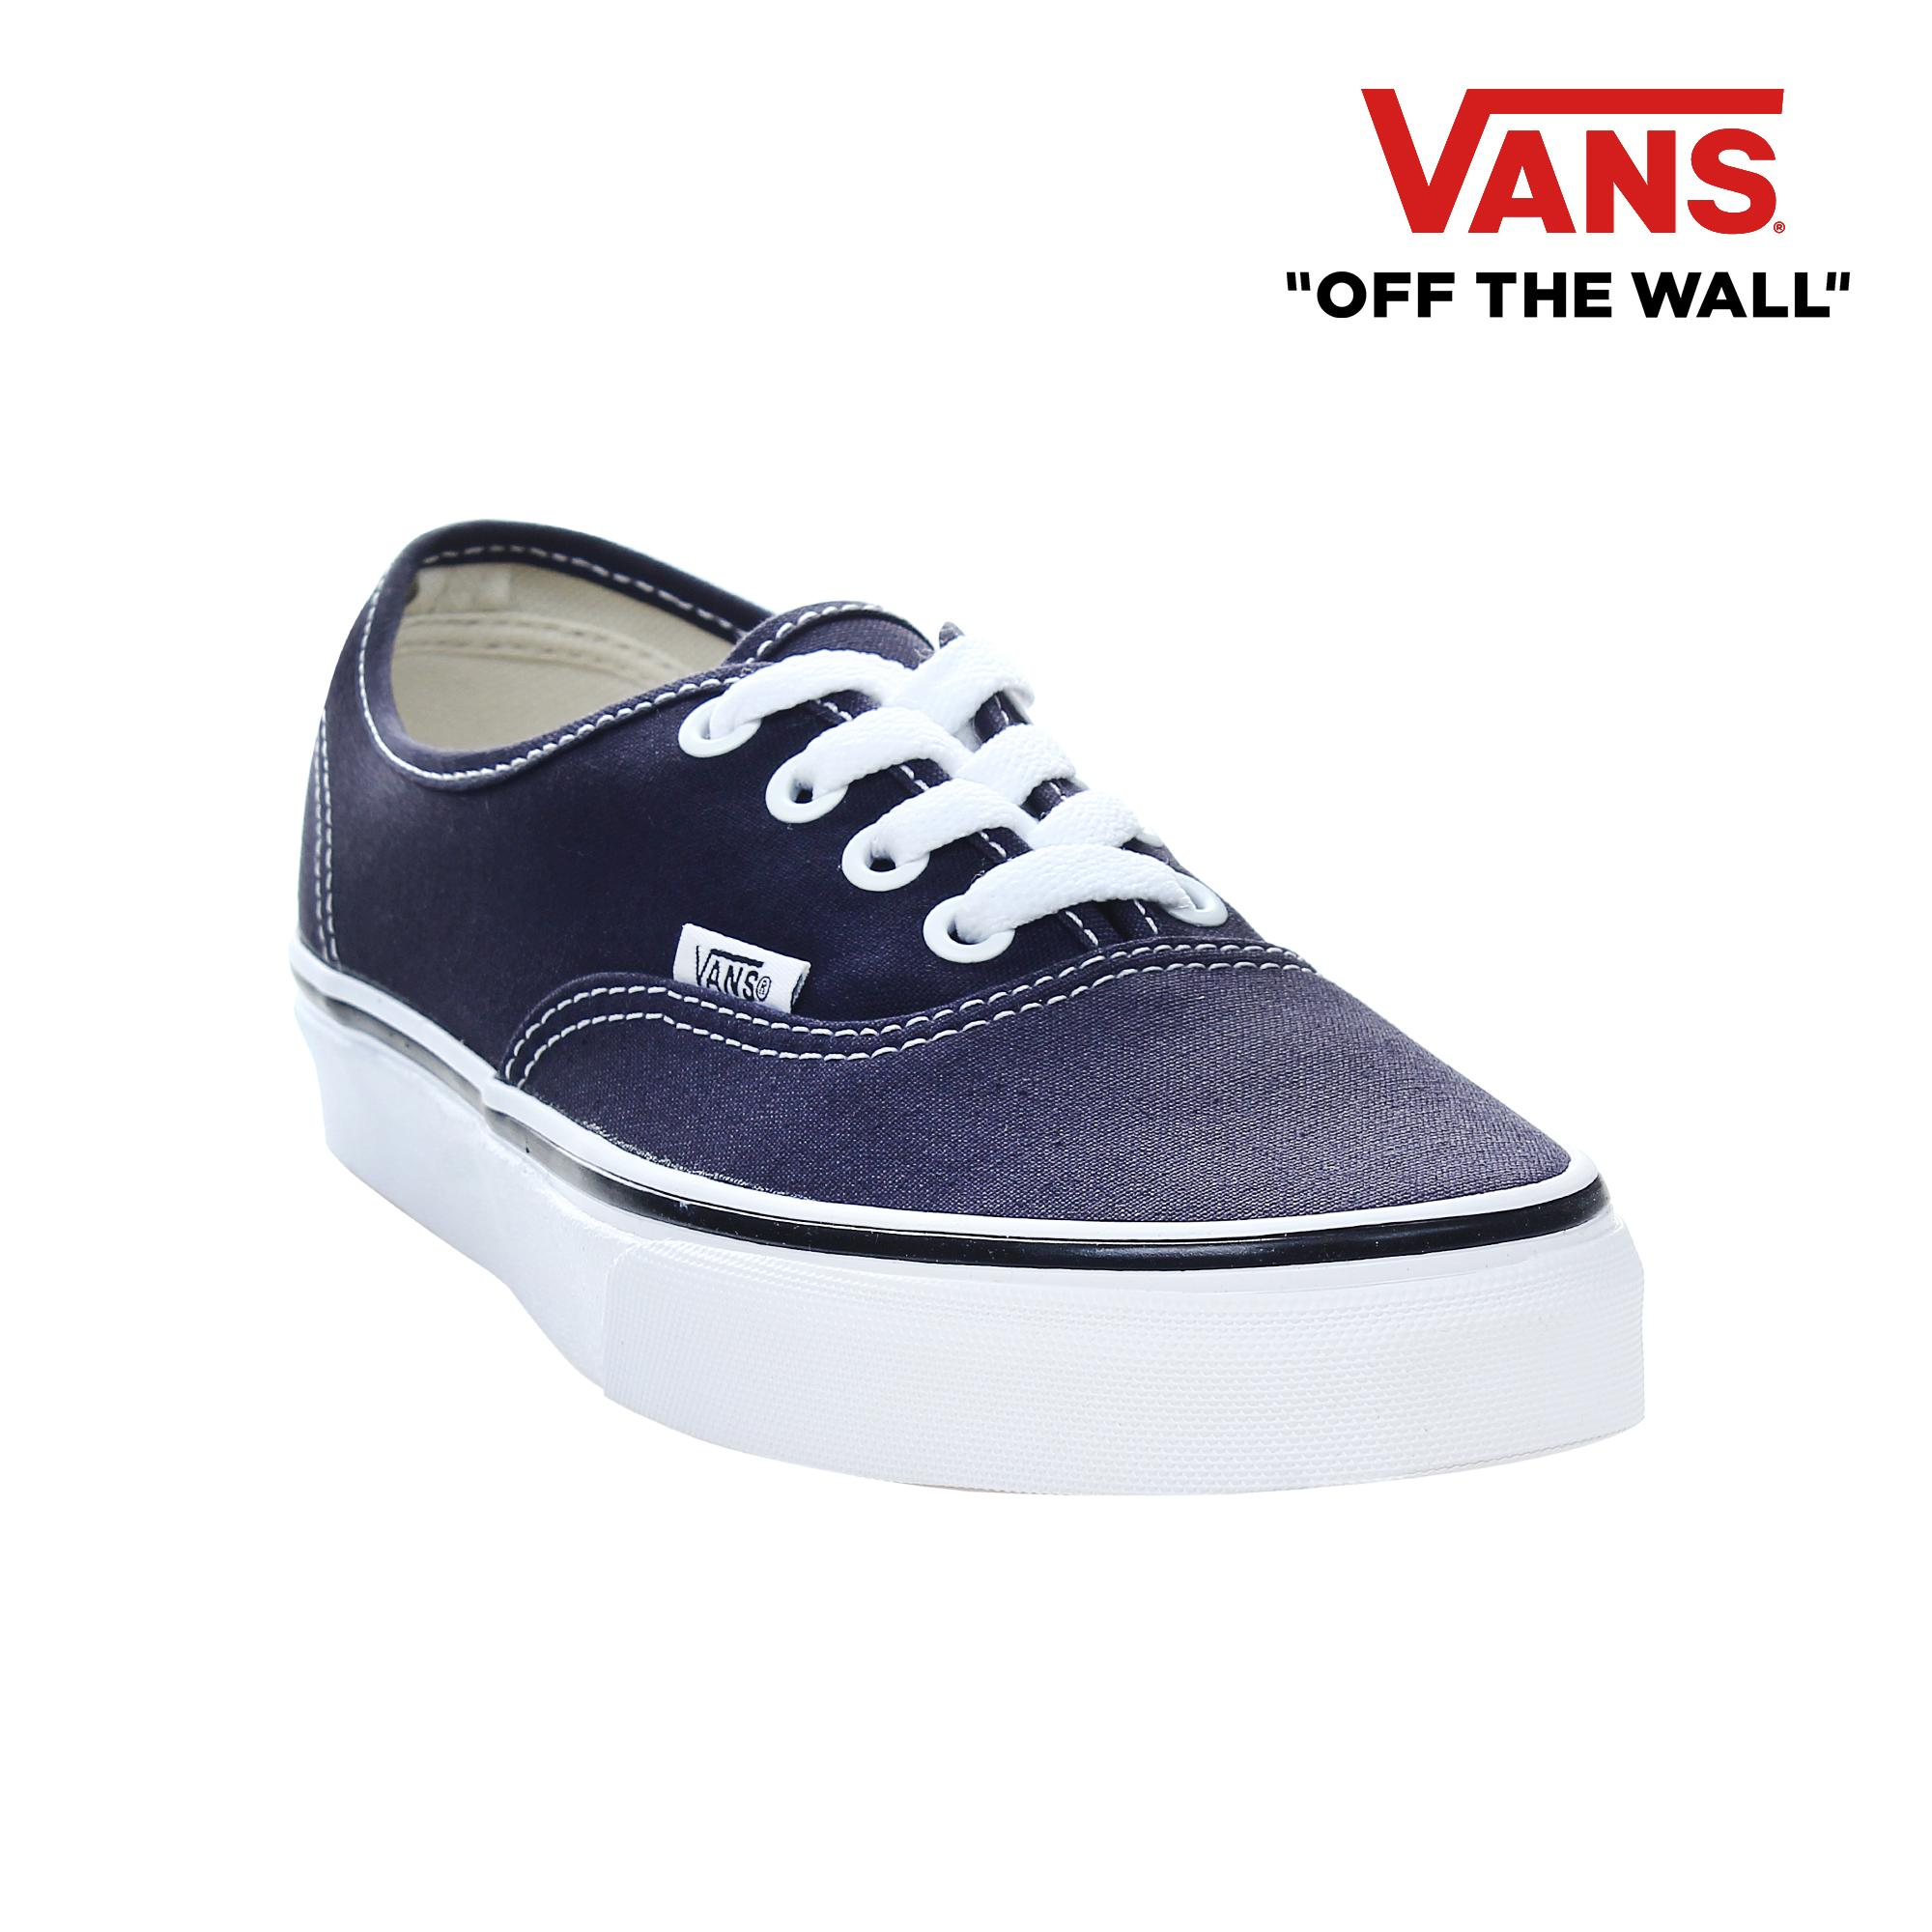 Vans Official Store Lazada On Sale, UP TO 66% OFF